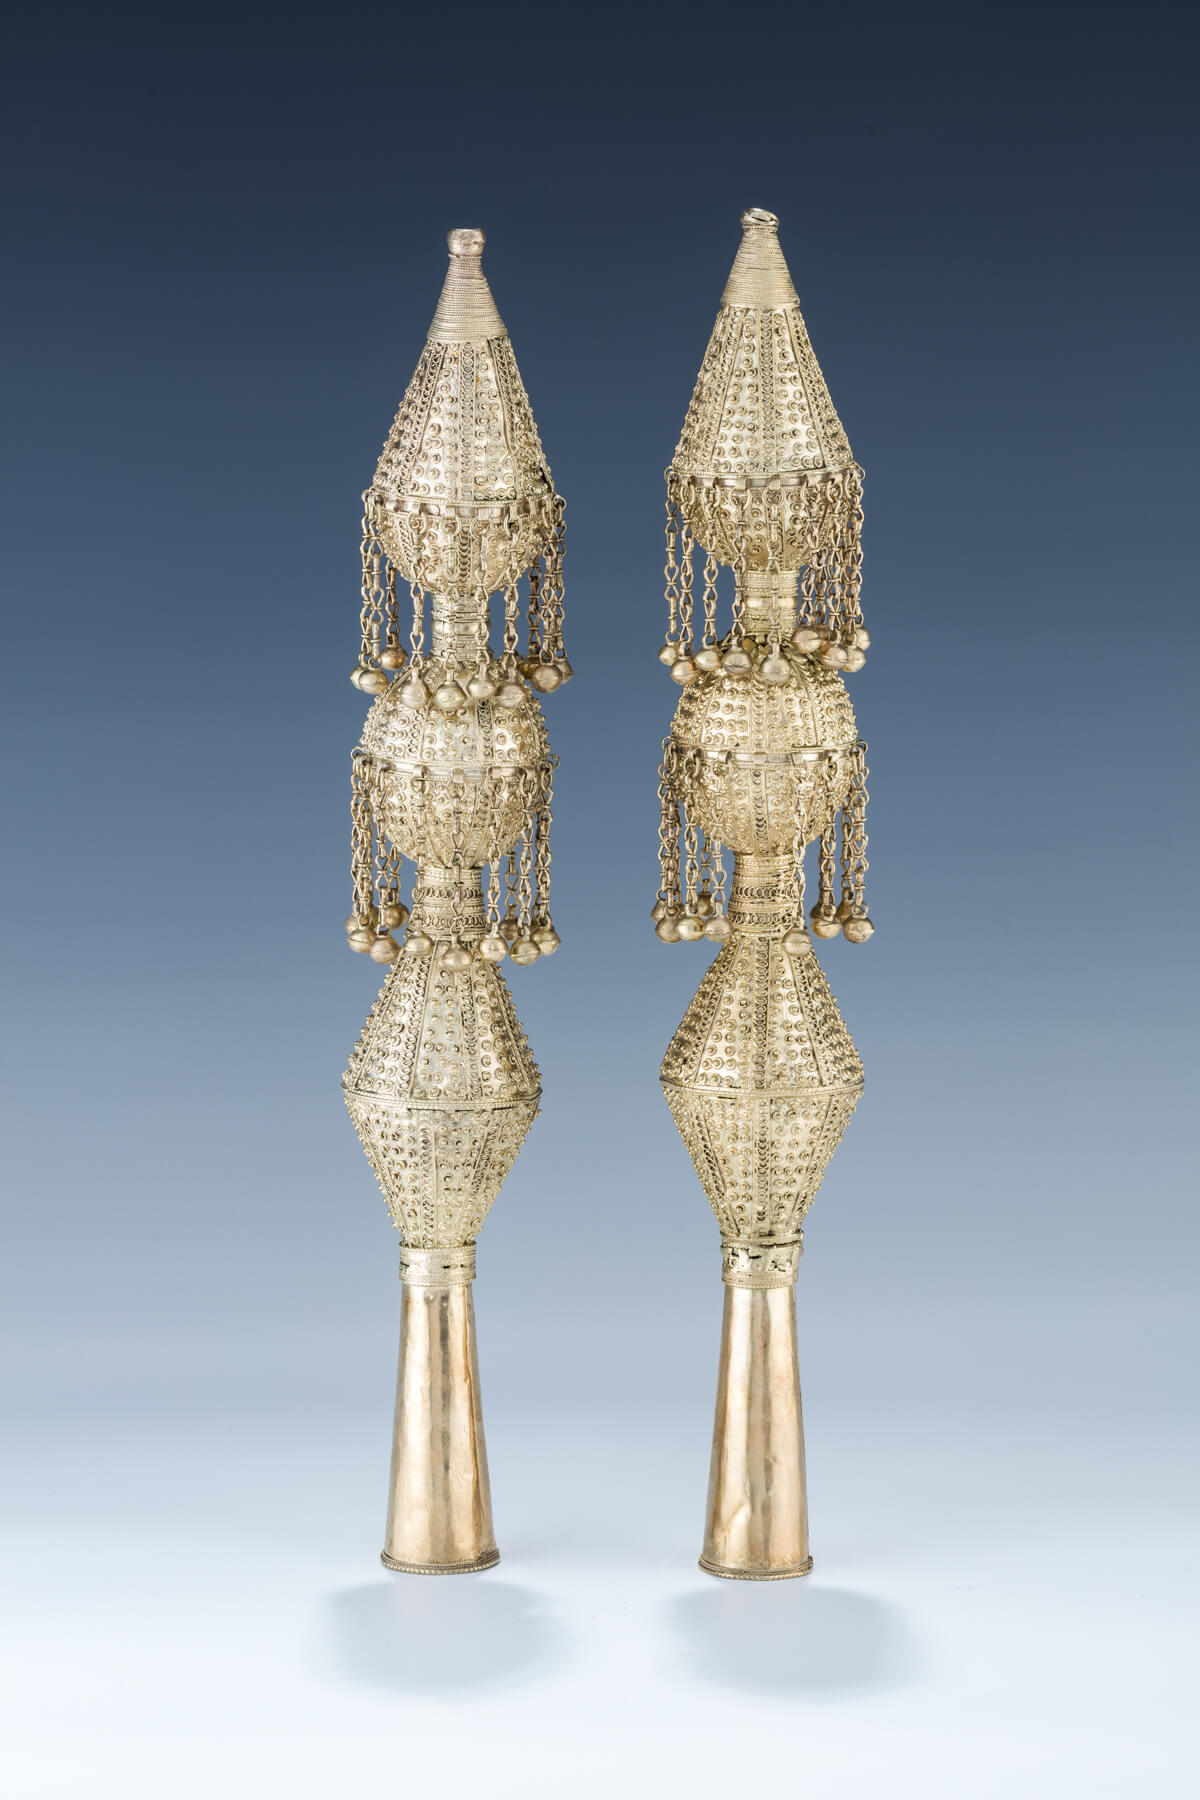 54. A Pair Of Large Gilded Silver Torah Finials